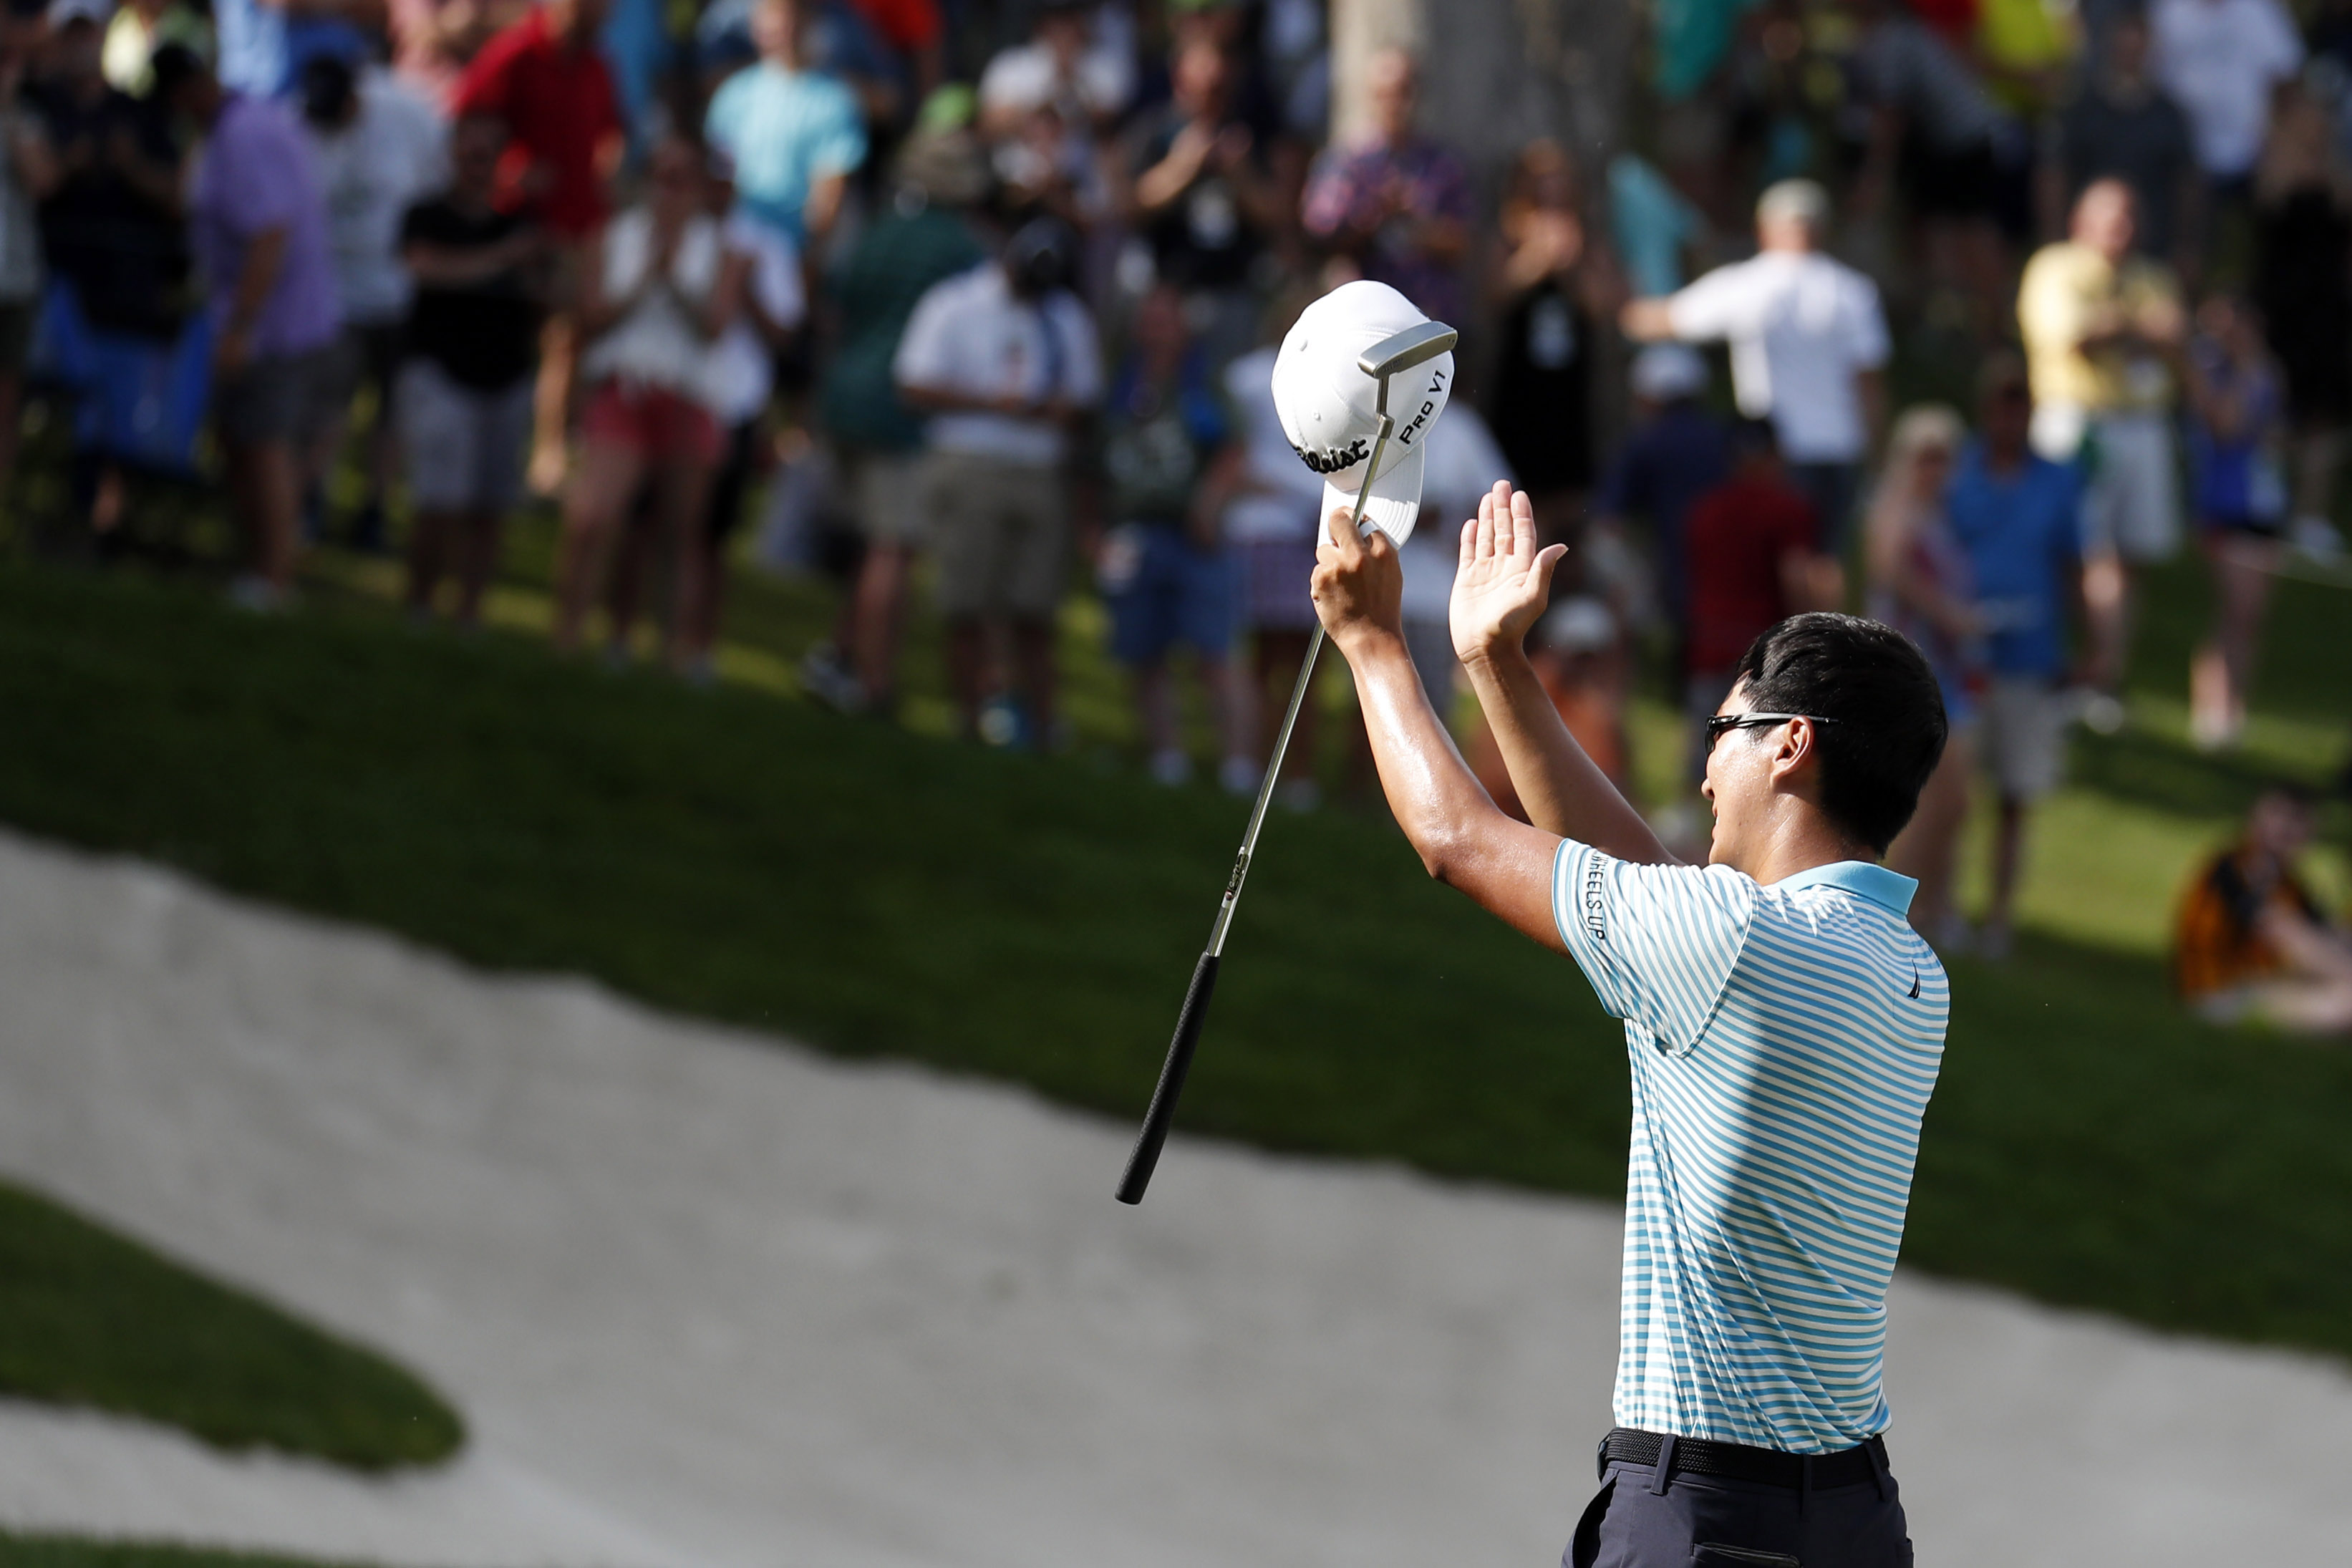 Jul 15, 2018; Silvis, IL, USA; PGA golfer Michael Kim acknowledges the fans on the 18th green after winning the John Deere Classic golf tournament at TPC Deere Run. Mandatory Credit: Brian Spurlock-USA TODAY Sports